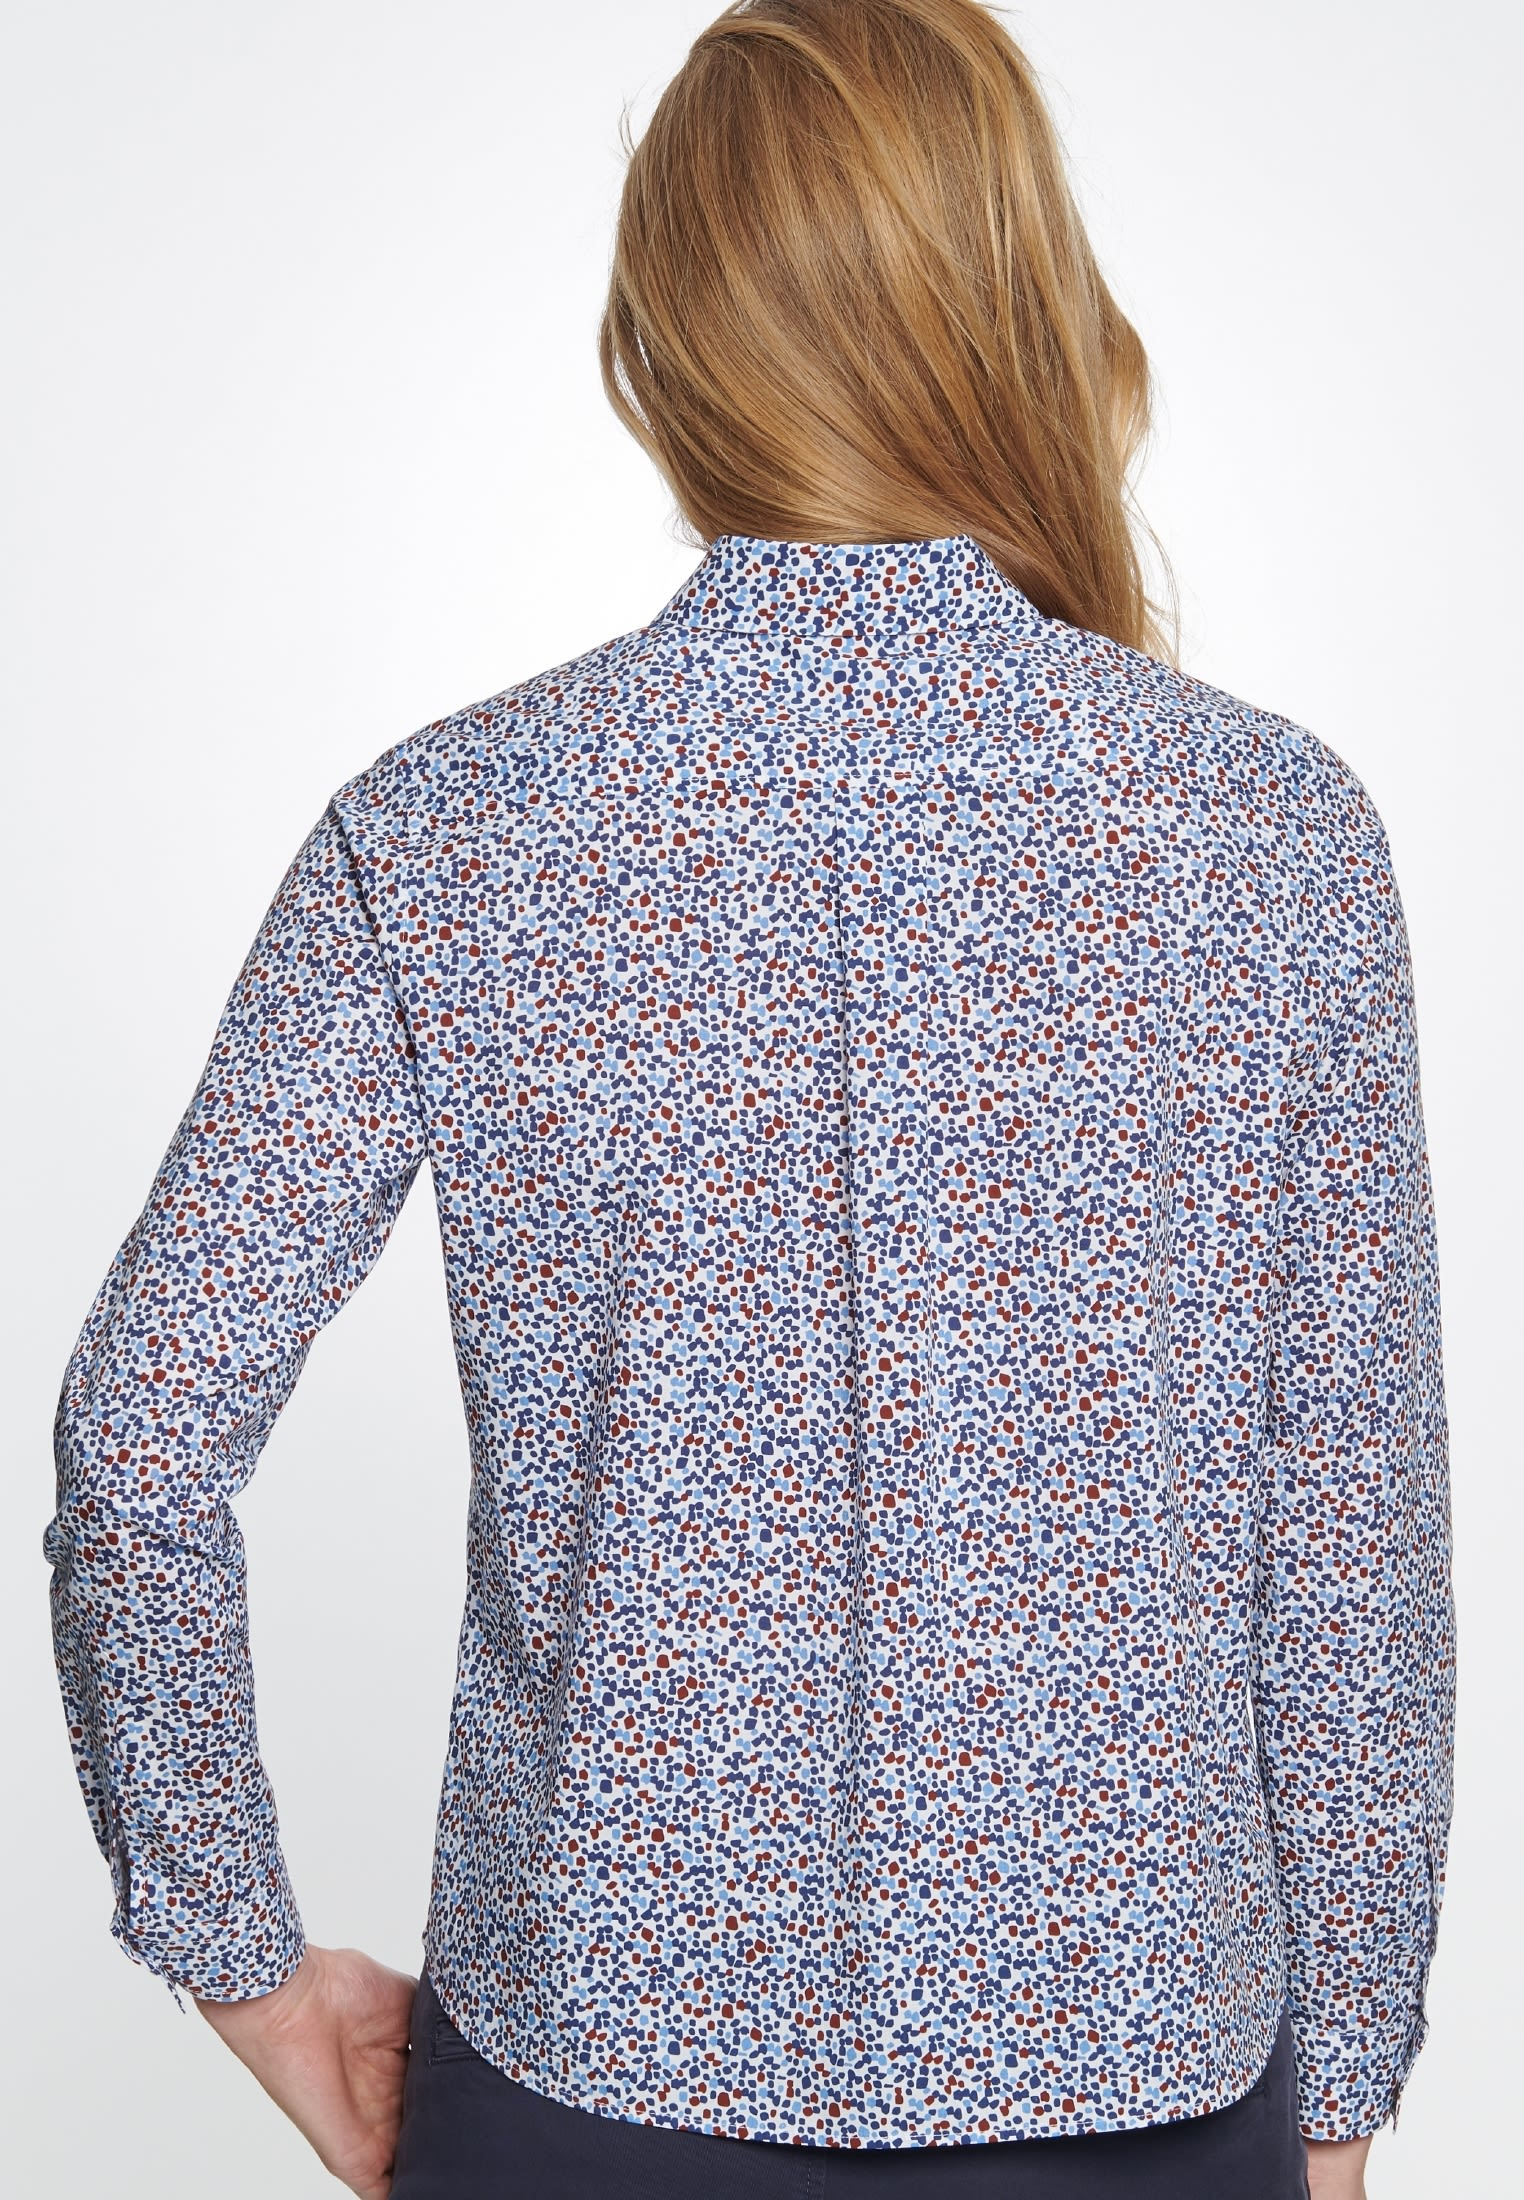 Voile Shirt Blouse made of 100% Cotton in blau |  Seidensticker Onlineshop